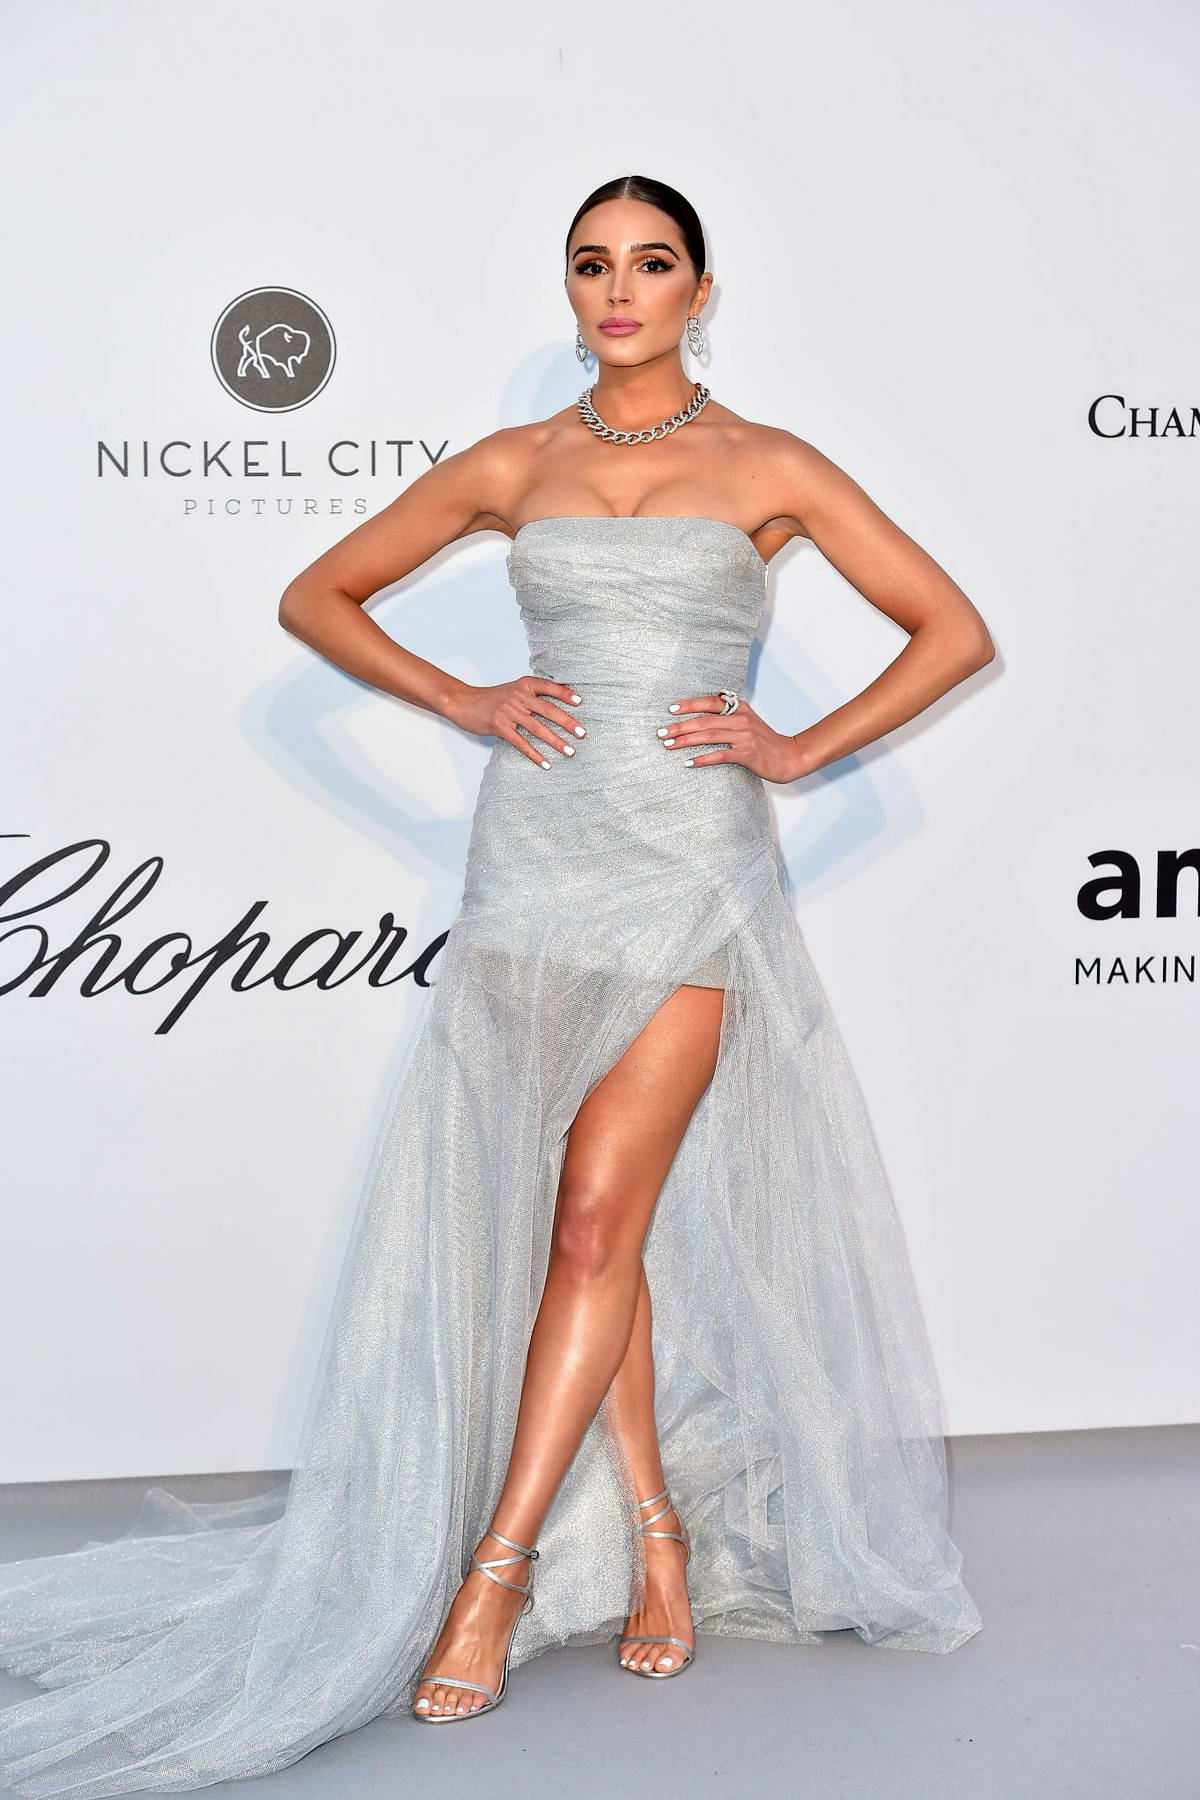 Olivia Culpo attends the 26th amfAR Gala held at Hotel du Cap-Eden-Roc during the 72nd annual Cannes Film Festival in Cannes, France